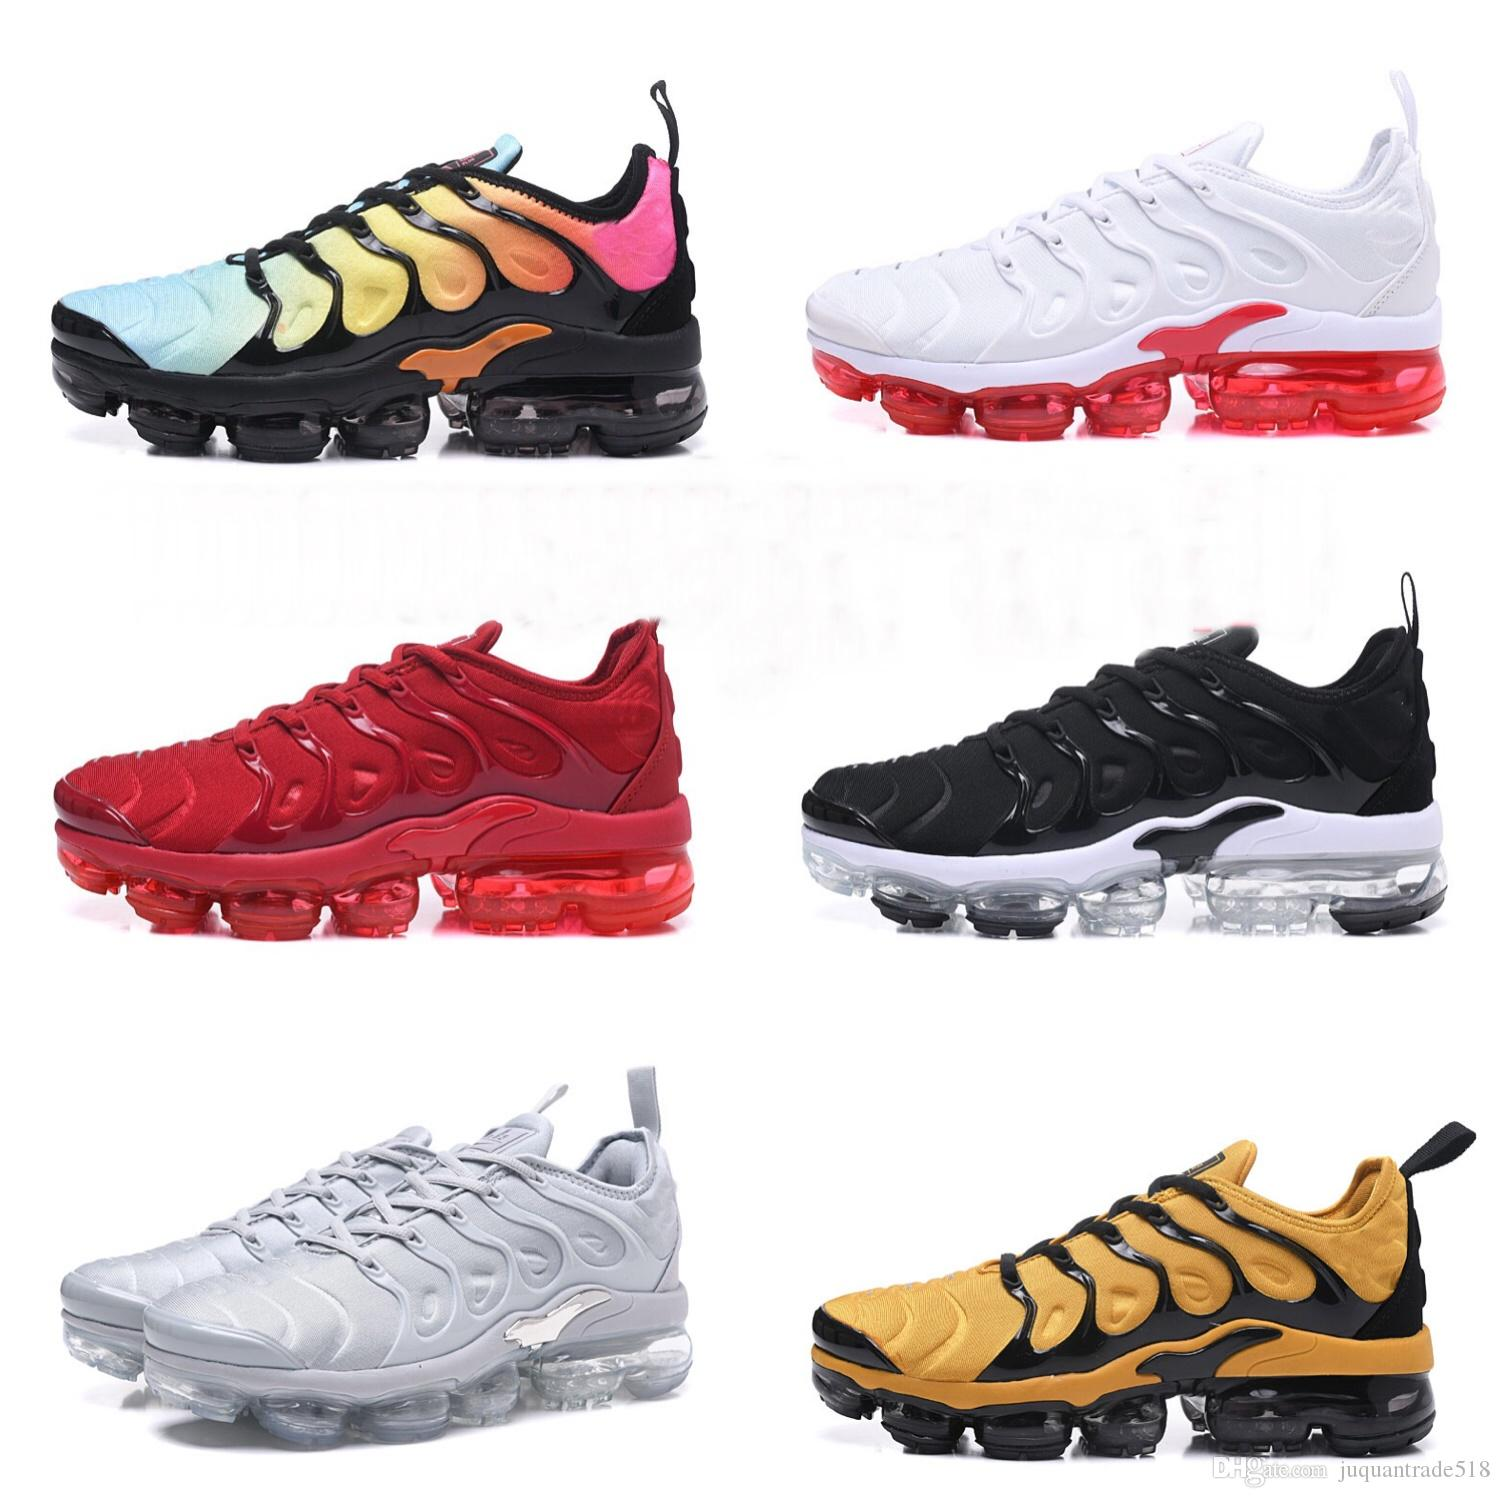 0f63c5c7f6 2019 2018 New Color Vapormax Plus TN VM Olive Run In Metallic Mens Designer  Shoes Men Running Trainers Women Luxury Brand Sneakers From Juquantrade518,  ...